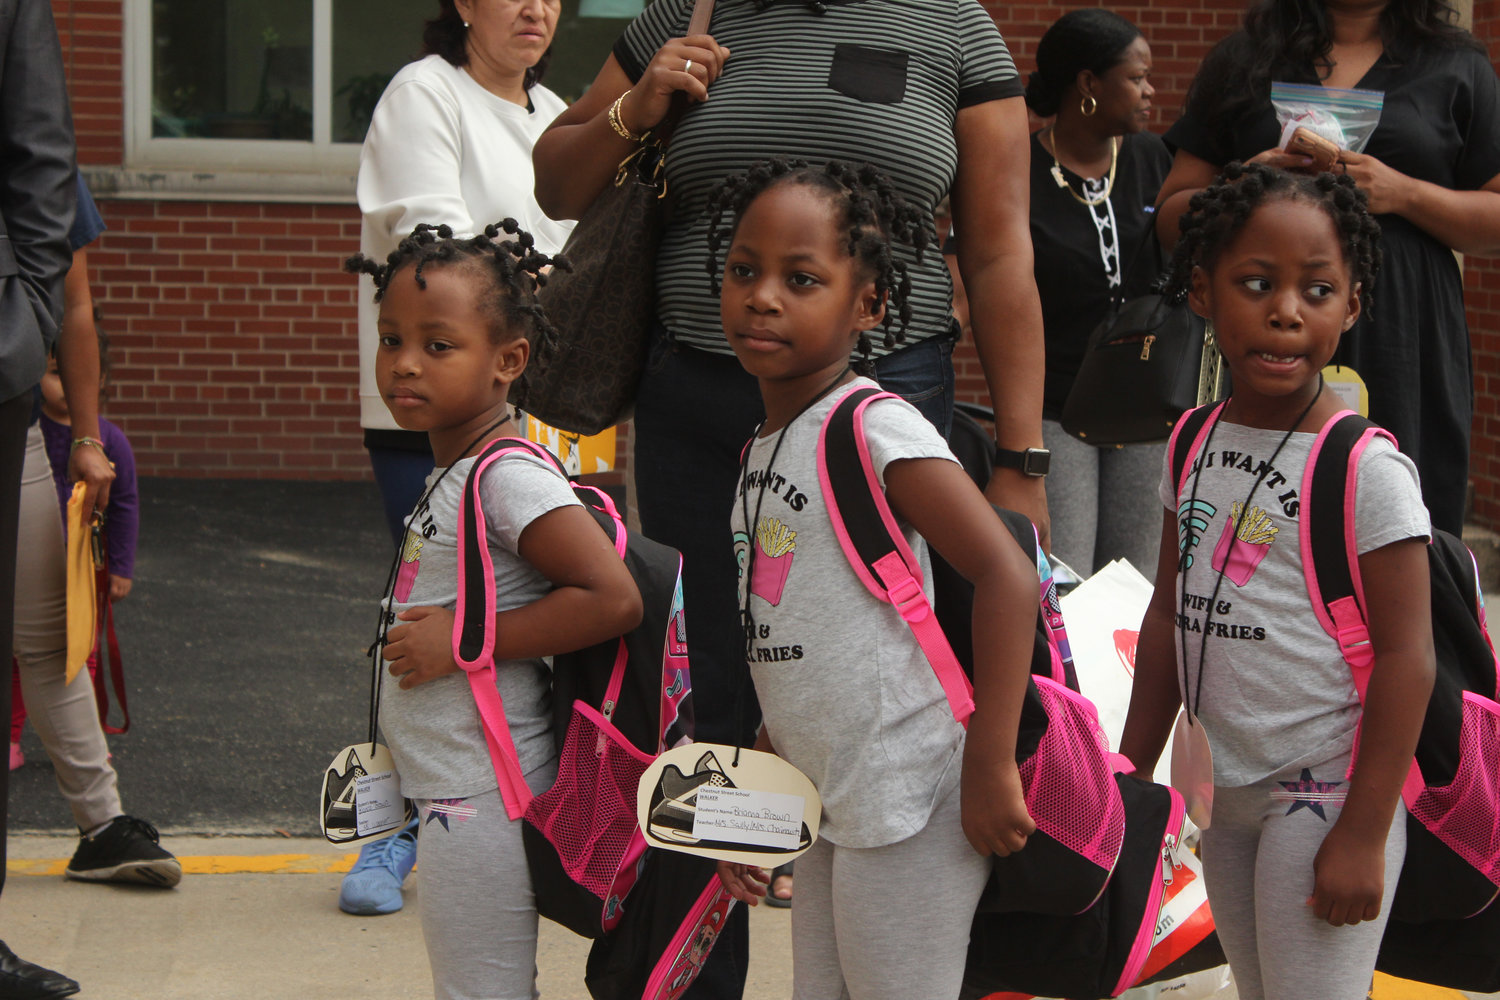 Triplets Bianca, left, Brianna, and Brineka Brown wore matching outfits.